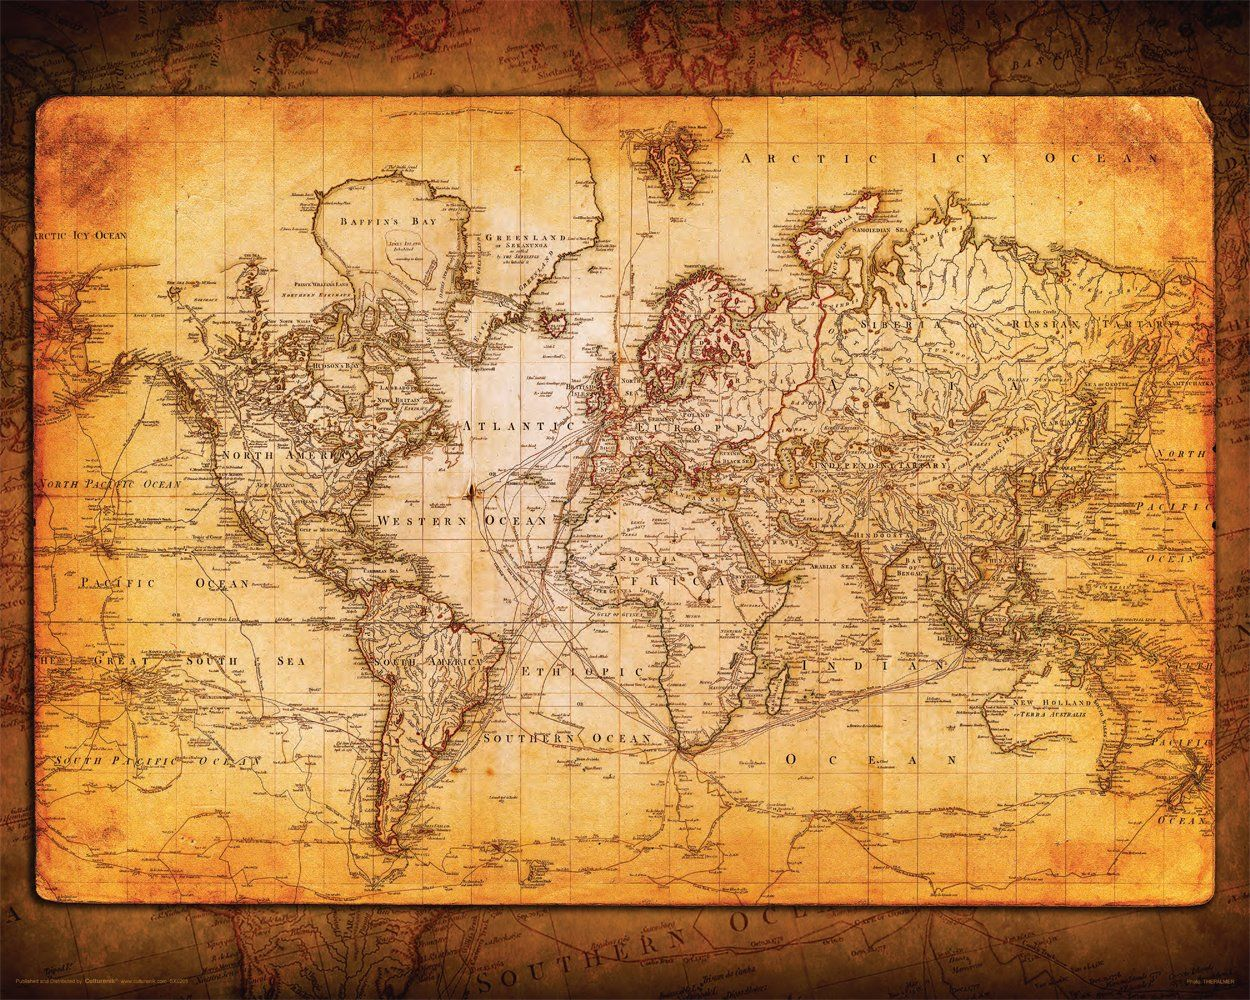 World map antique vintage old style decorative educatiional poster world map antique vintage old style decorative educatiional poster print 16x20 amazon gumiabroncs Images